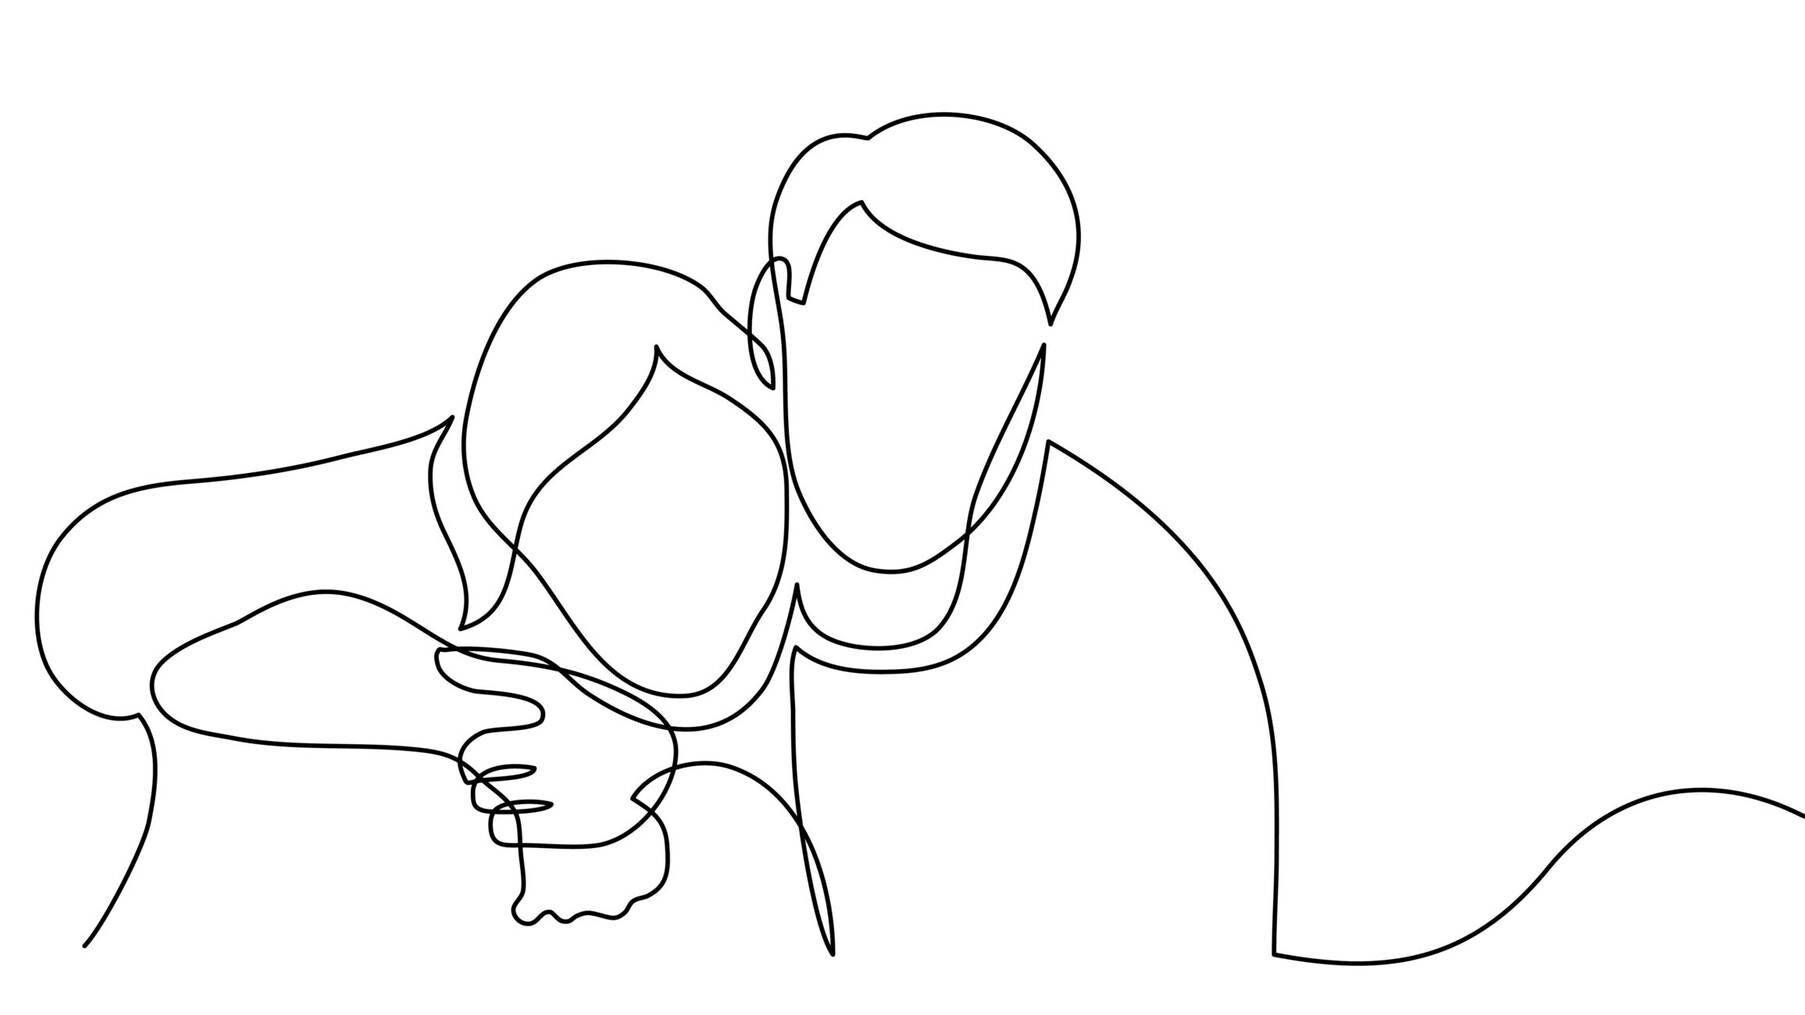 continuous line drawing of man and woman hugging each other, cancer related trauma